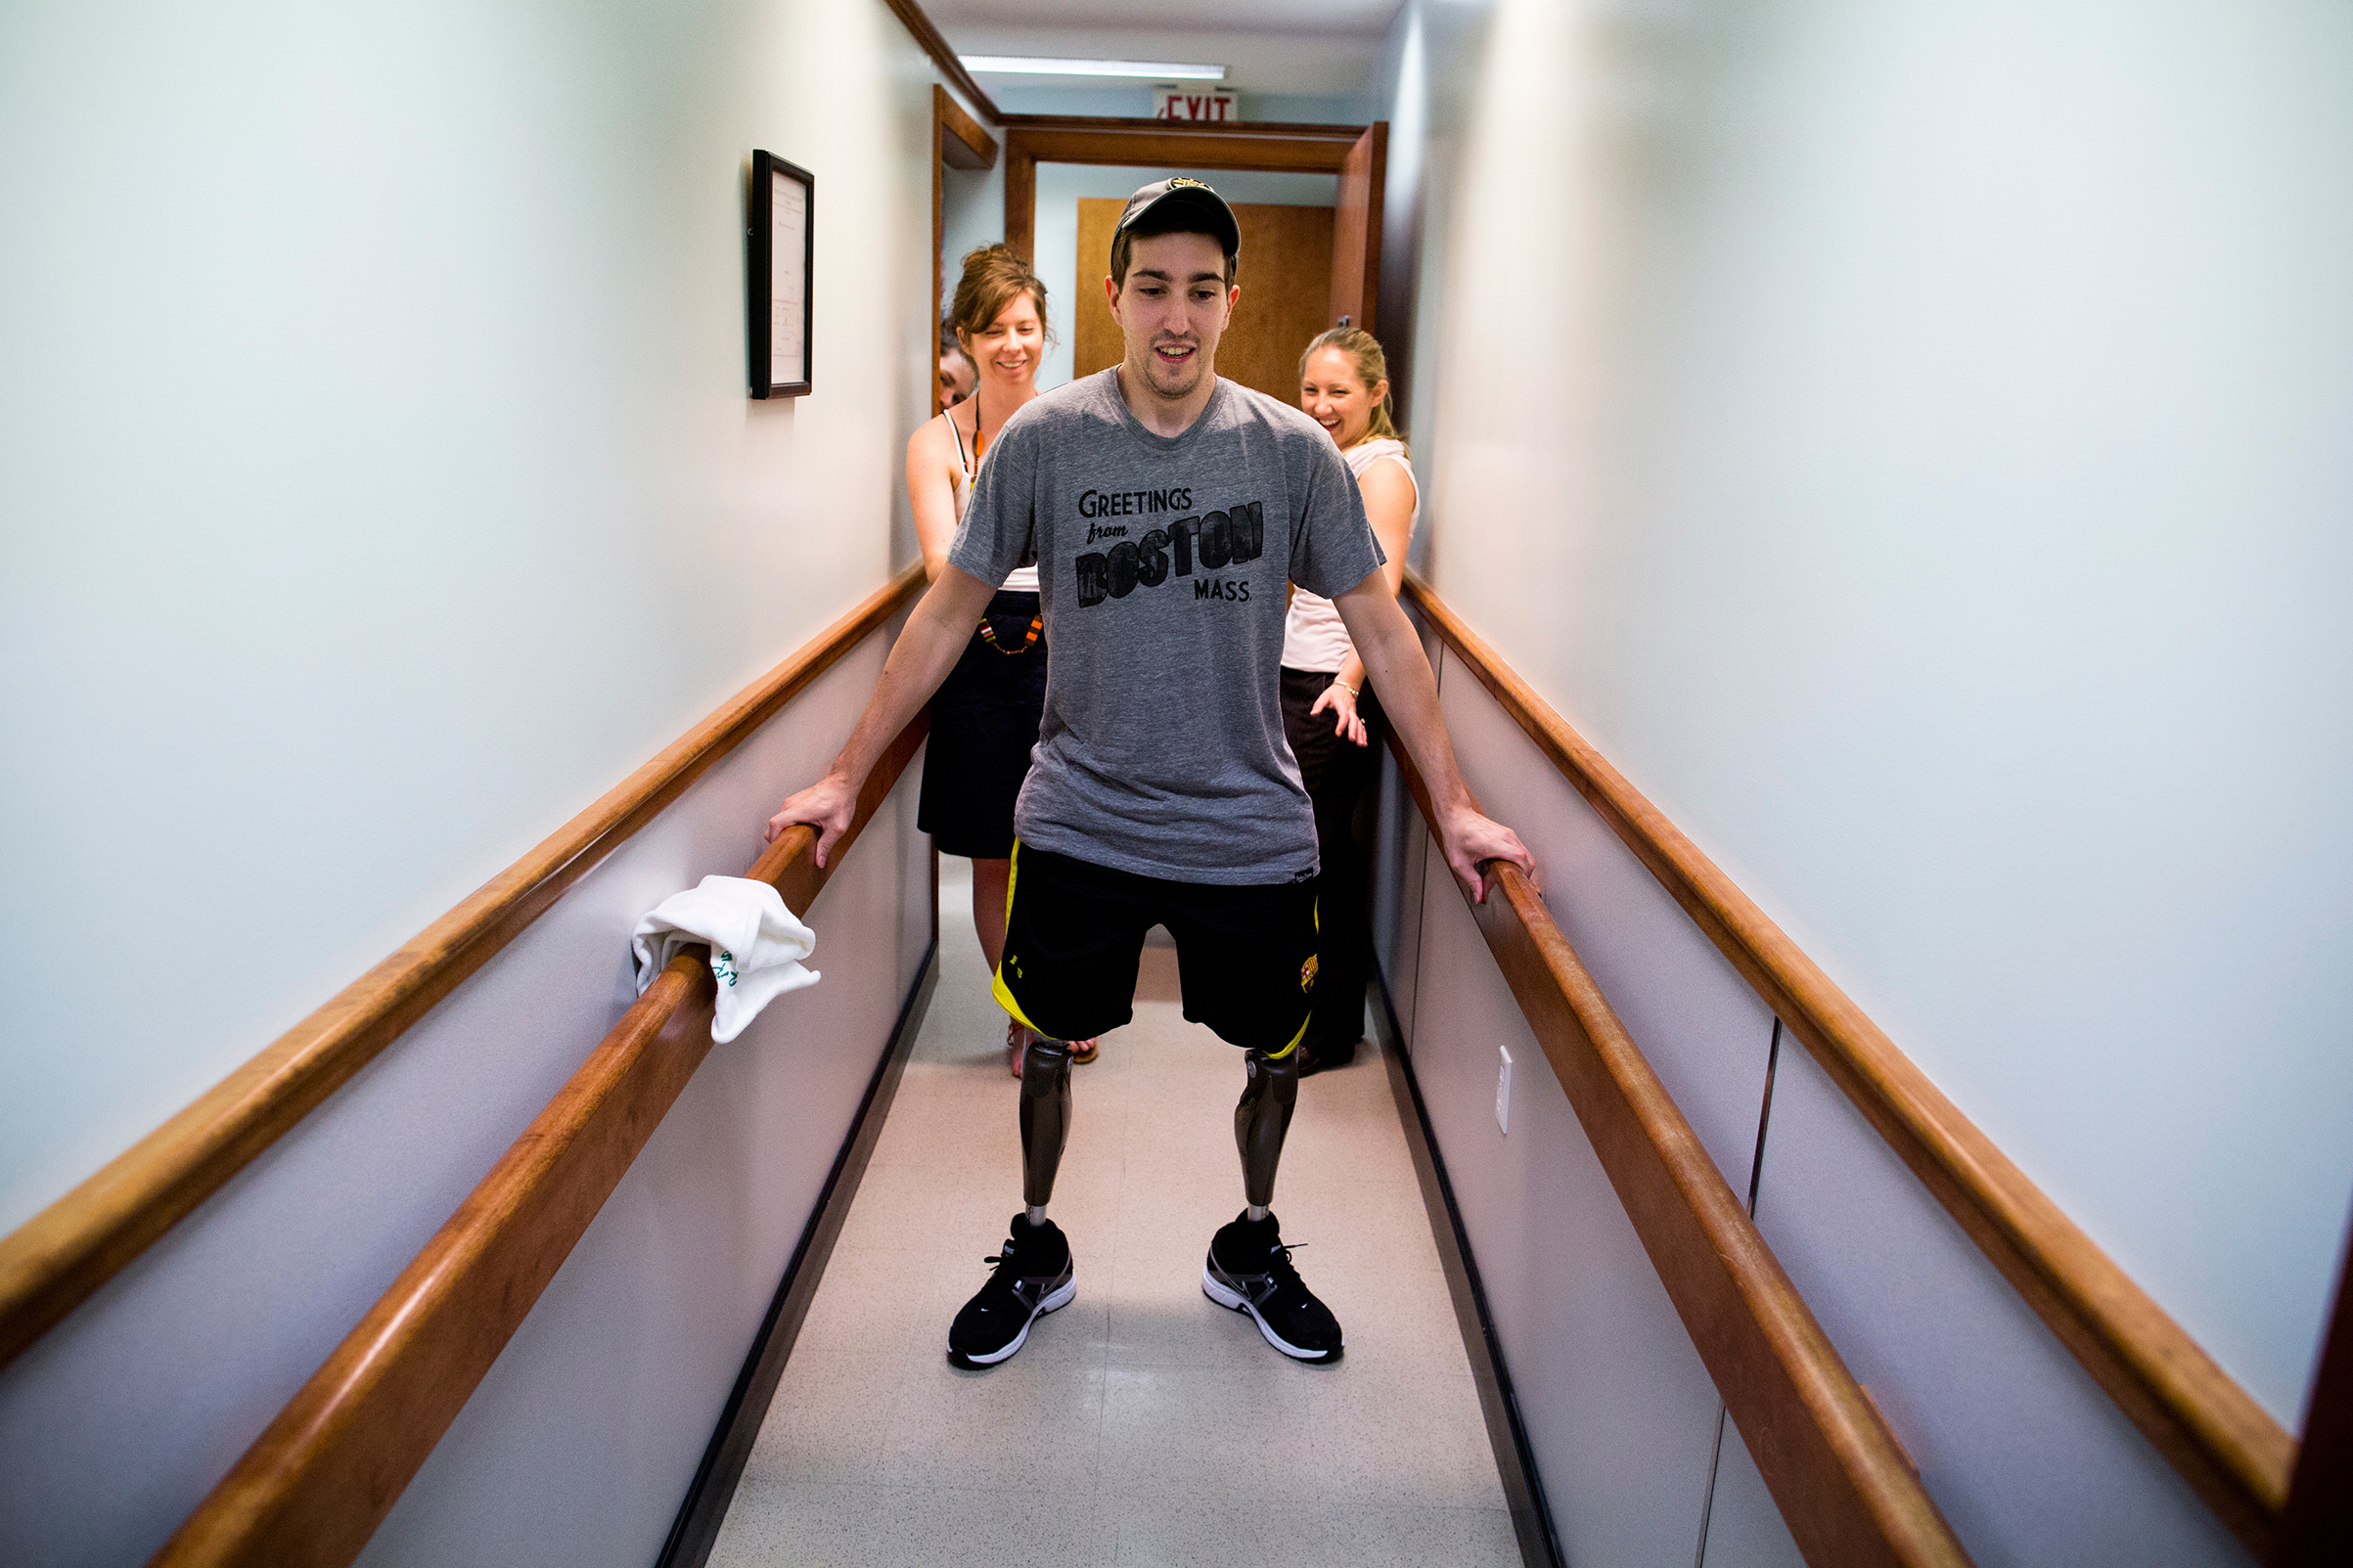 Bauman walks on his own for the first time since the marathon at a final fitting for his prosthetic legs in Massachusetts on May 31, 2013.